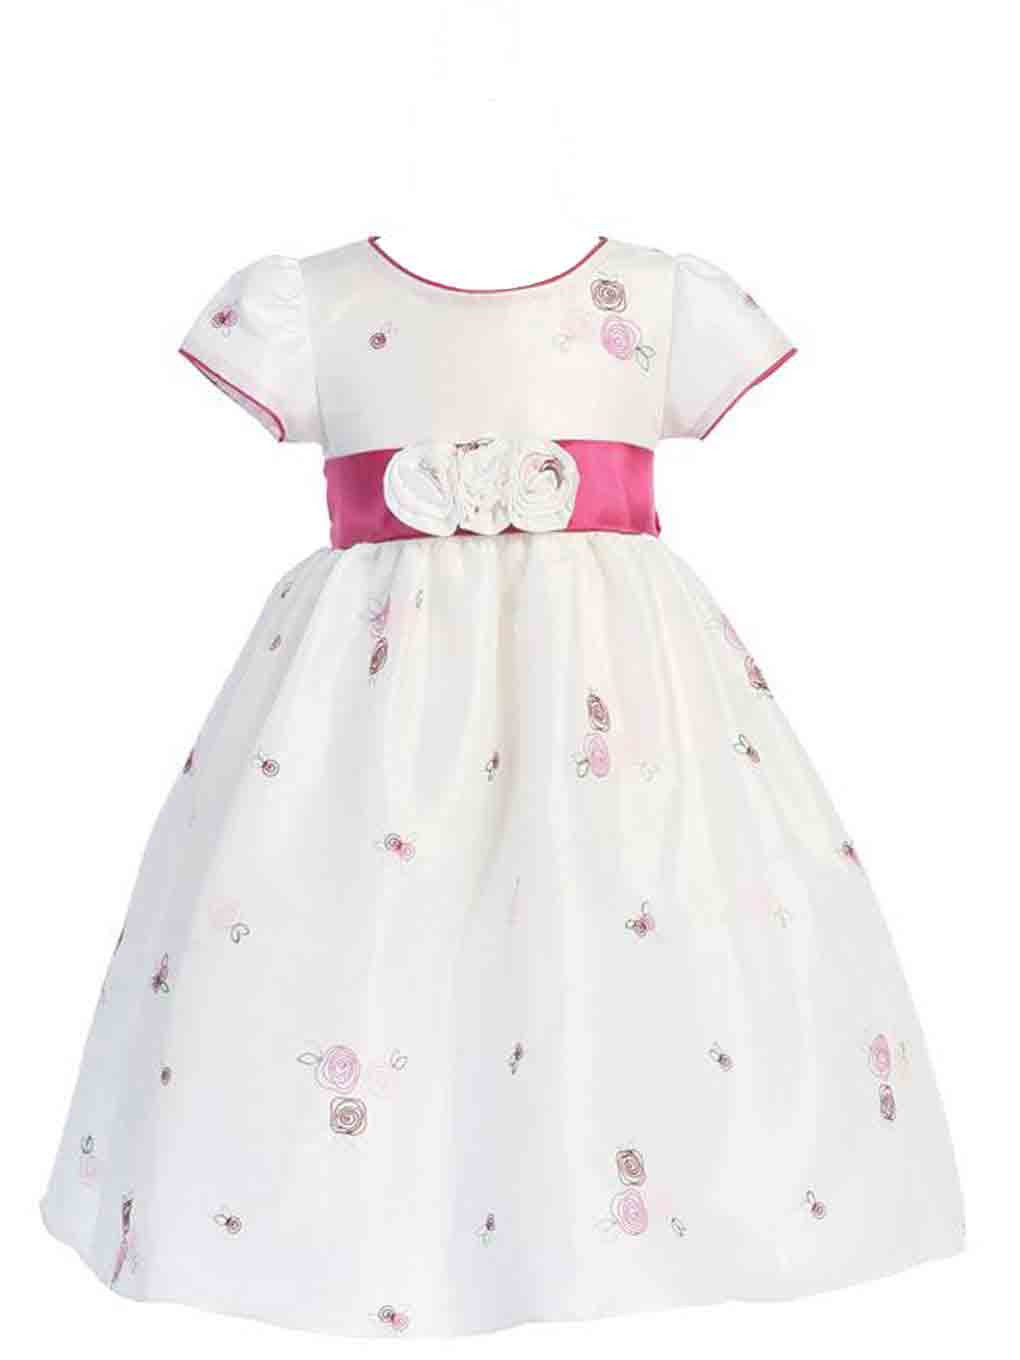 Image 1 of Gorgeous Boutique Pink White Embroidered Flower Girl Party Dress Lito USA - 4T